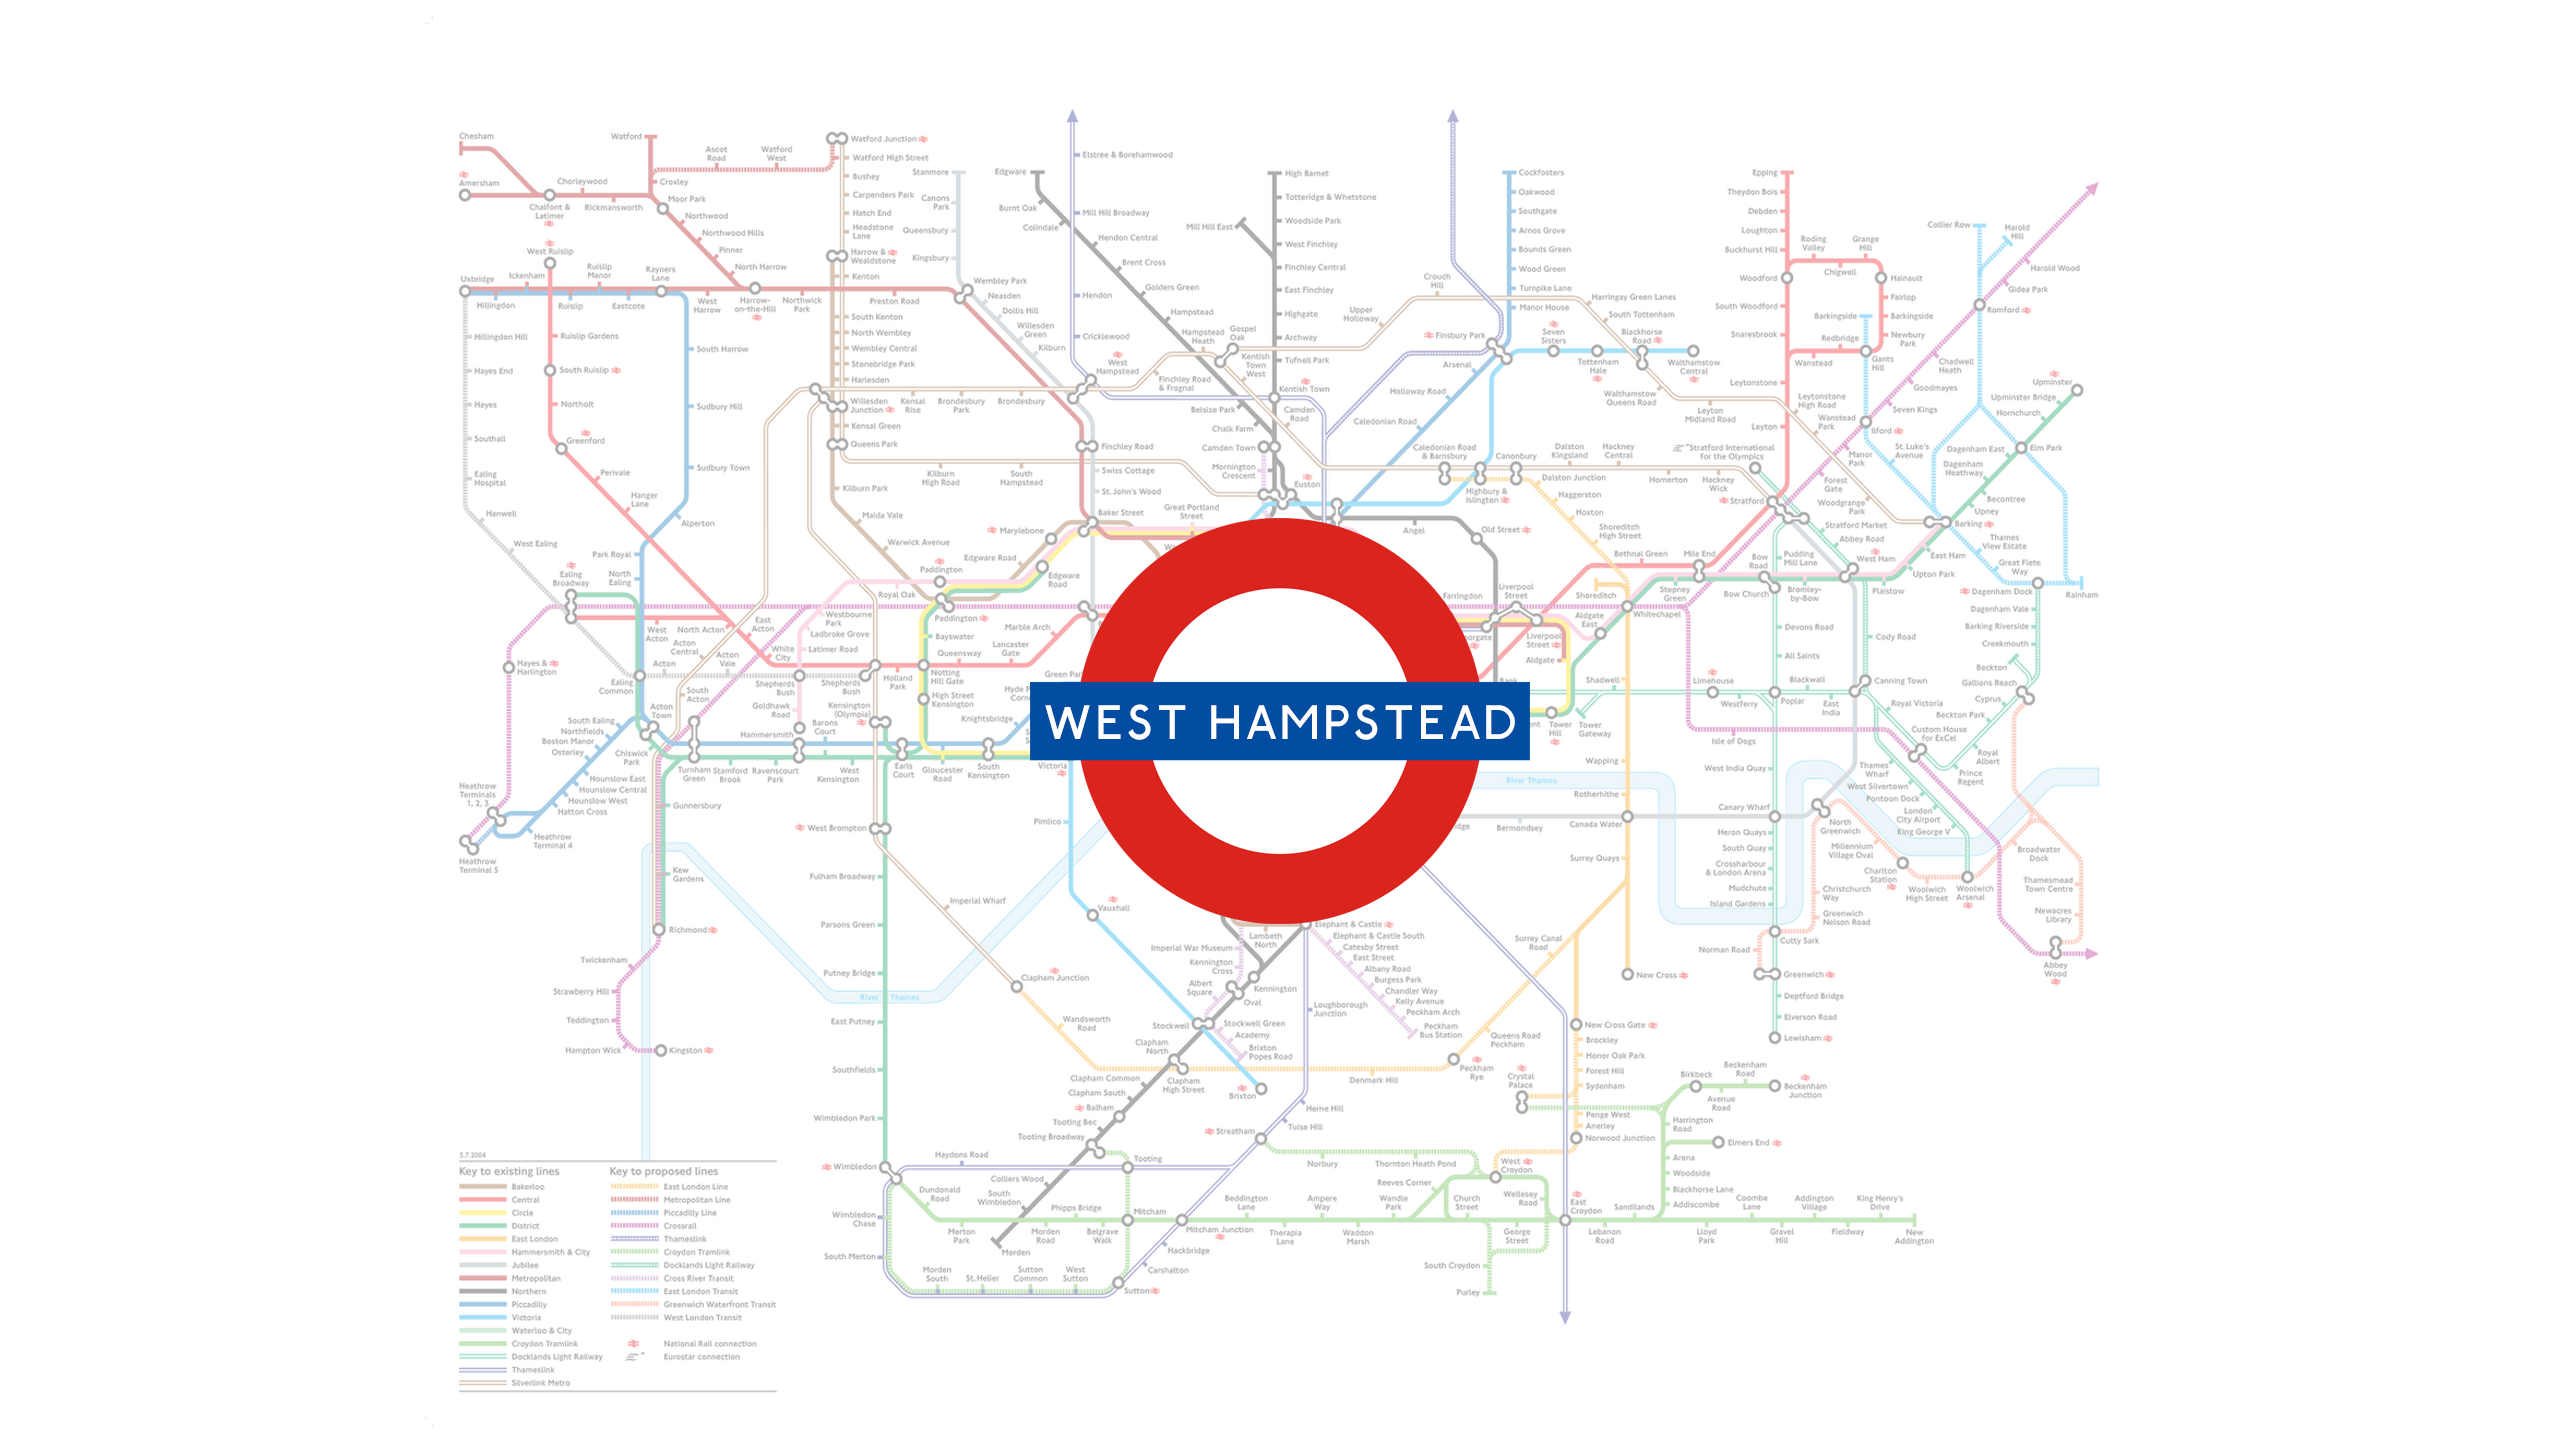 West Hampstead (Map)